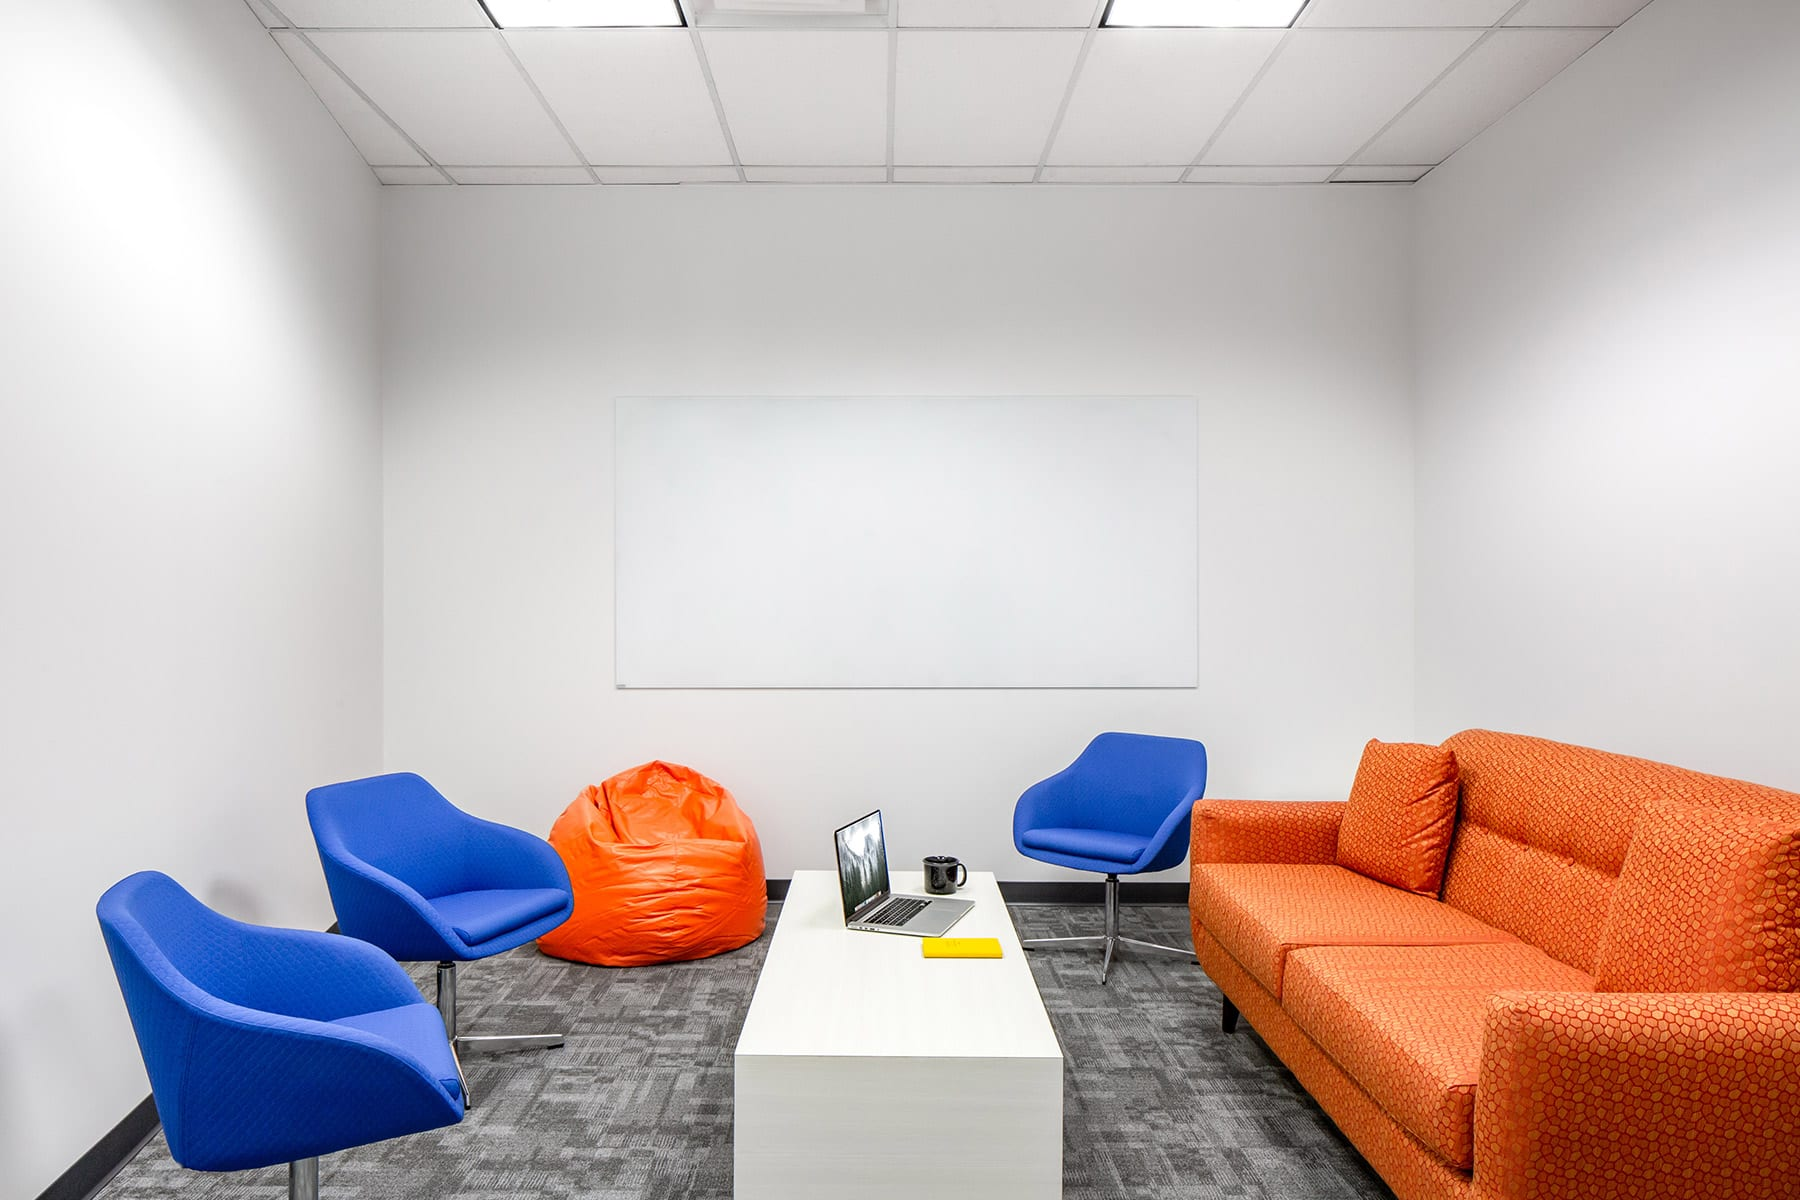 Renovated Burnaby Arista Networks office interiors - collaborative area and meeting room with orange couch and chairs